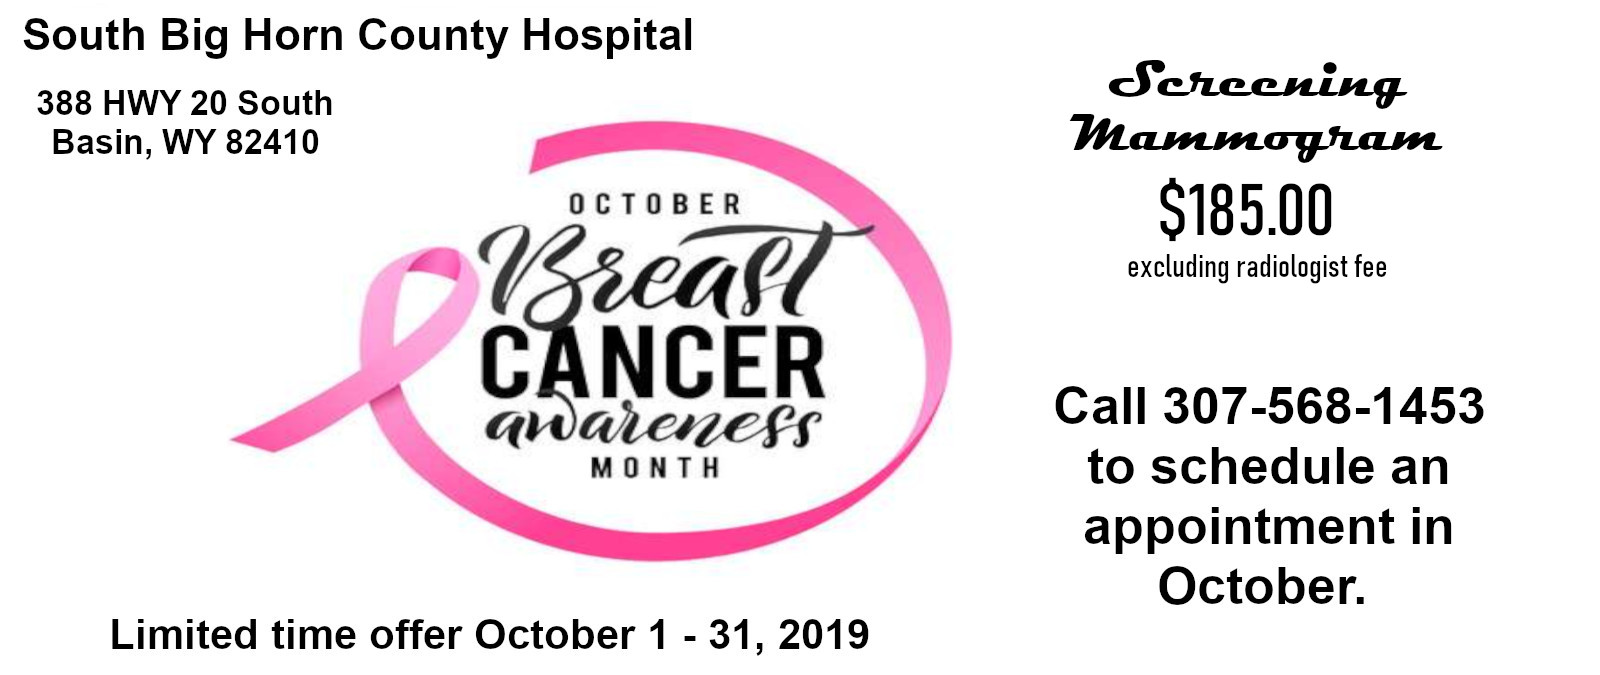 South Big Horn County Hospital is offering Screening Mammogram for $185.00 excluding radiologist fee. Limit time offer October 1 - 31, 2019. call 307-568-1453 to schedule